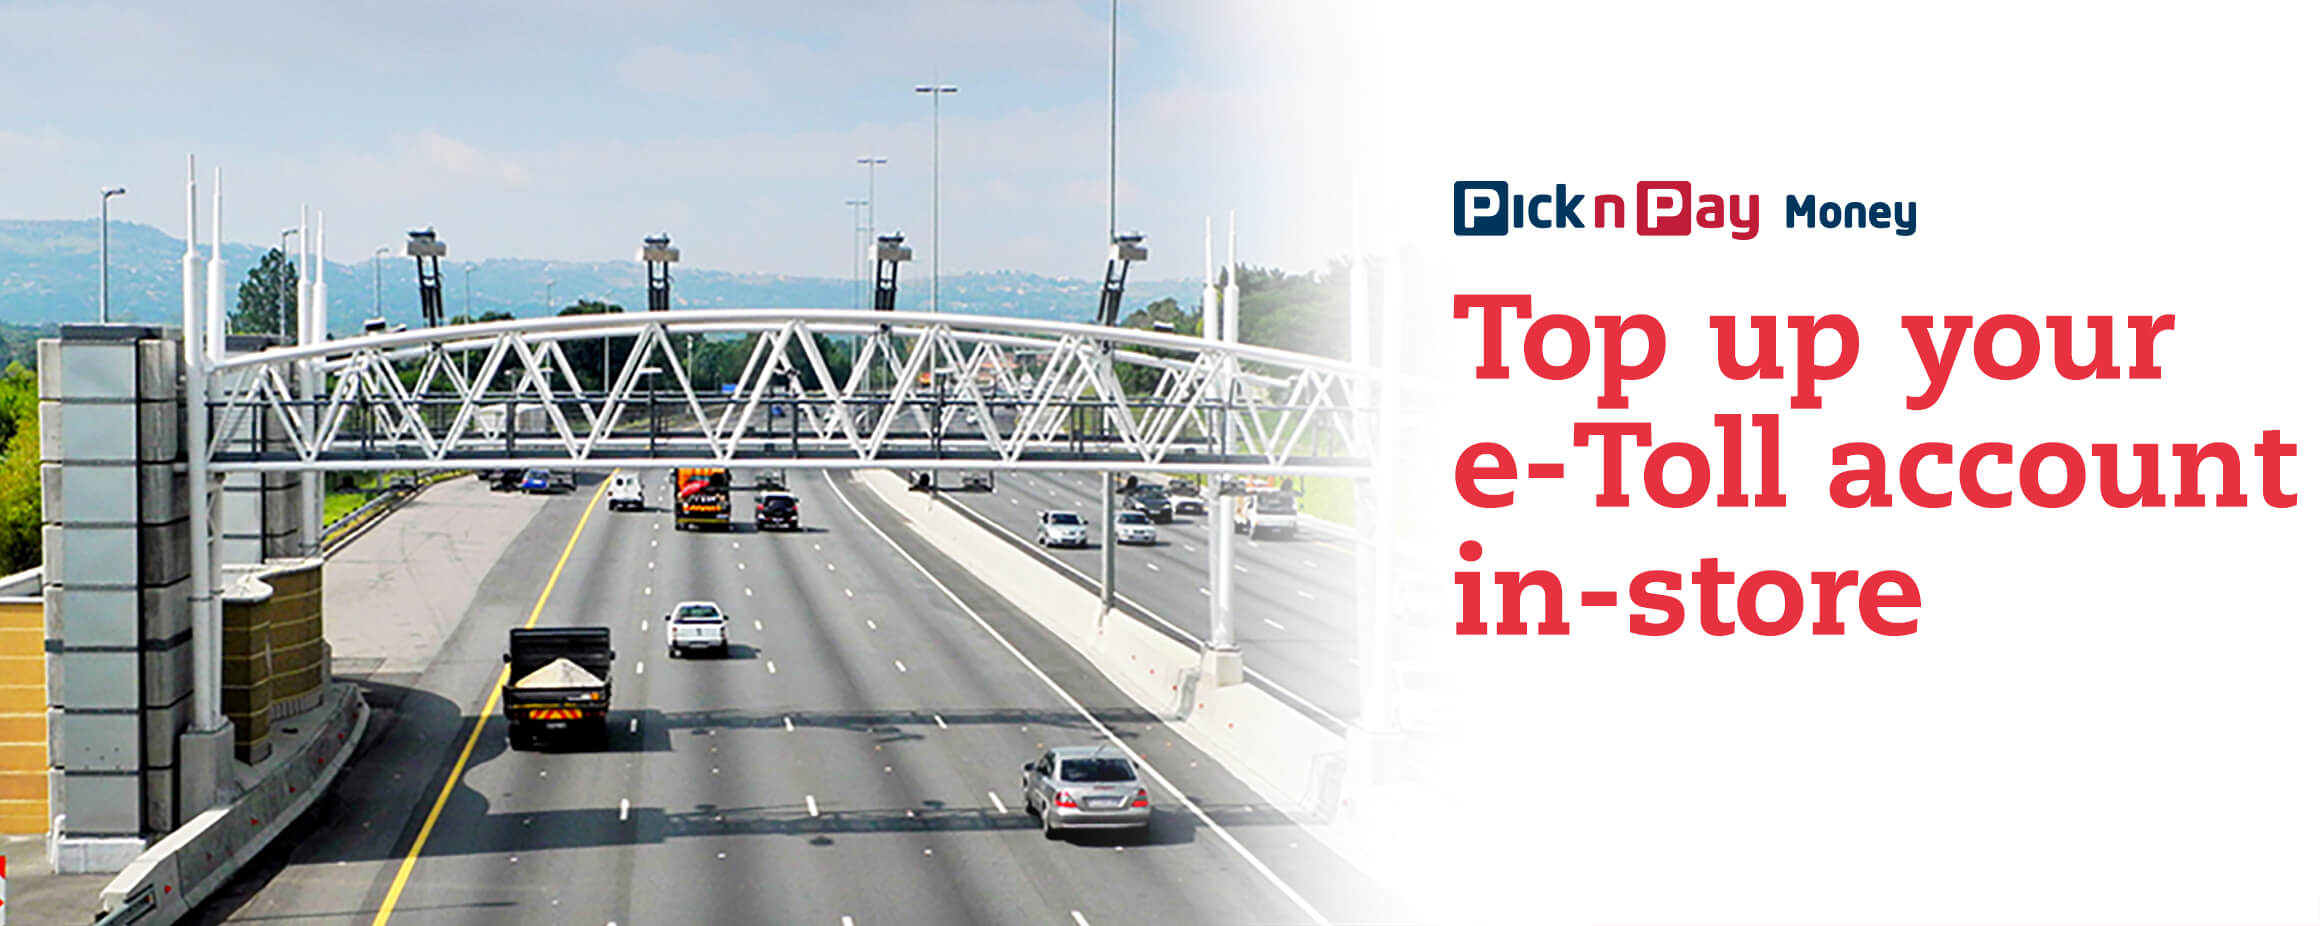 Top up your e-Toll account in-store